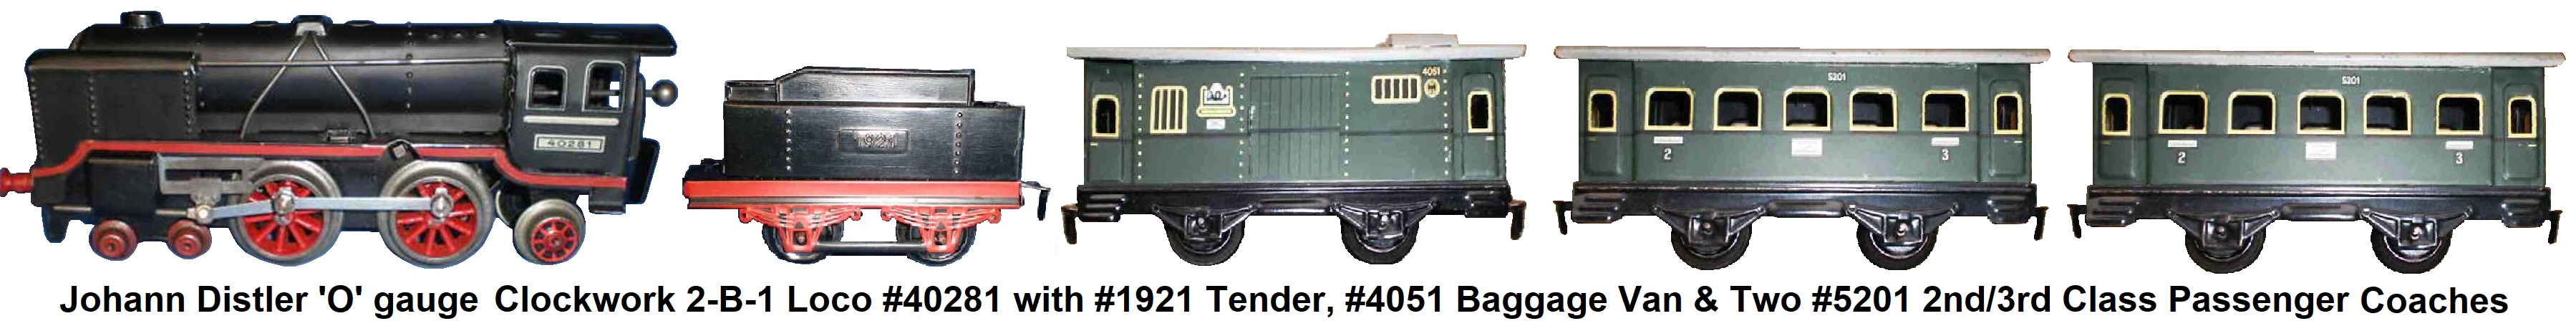 Johann Distler 'O' gauge tinplate lithographed passenger set with 4-4-2 clockwork loco #40281, tender #1921, #4051 baggage van, and 2 #5201 2nd/3rd class passenger wagons